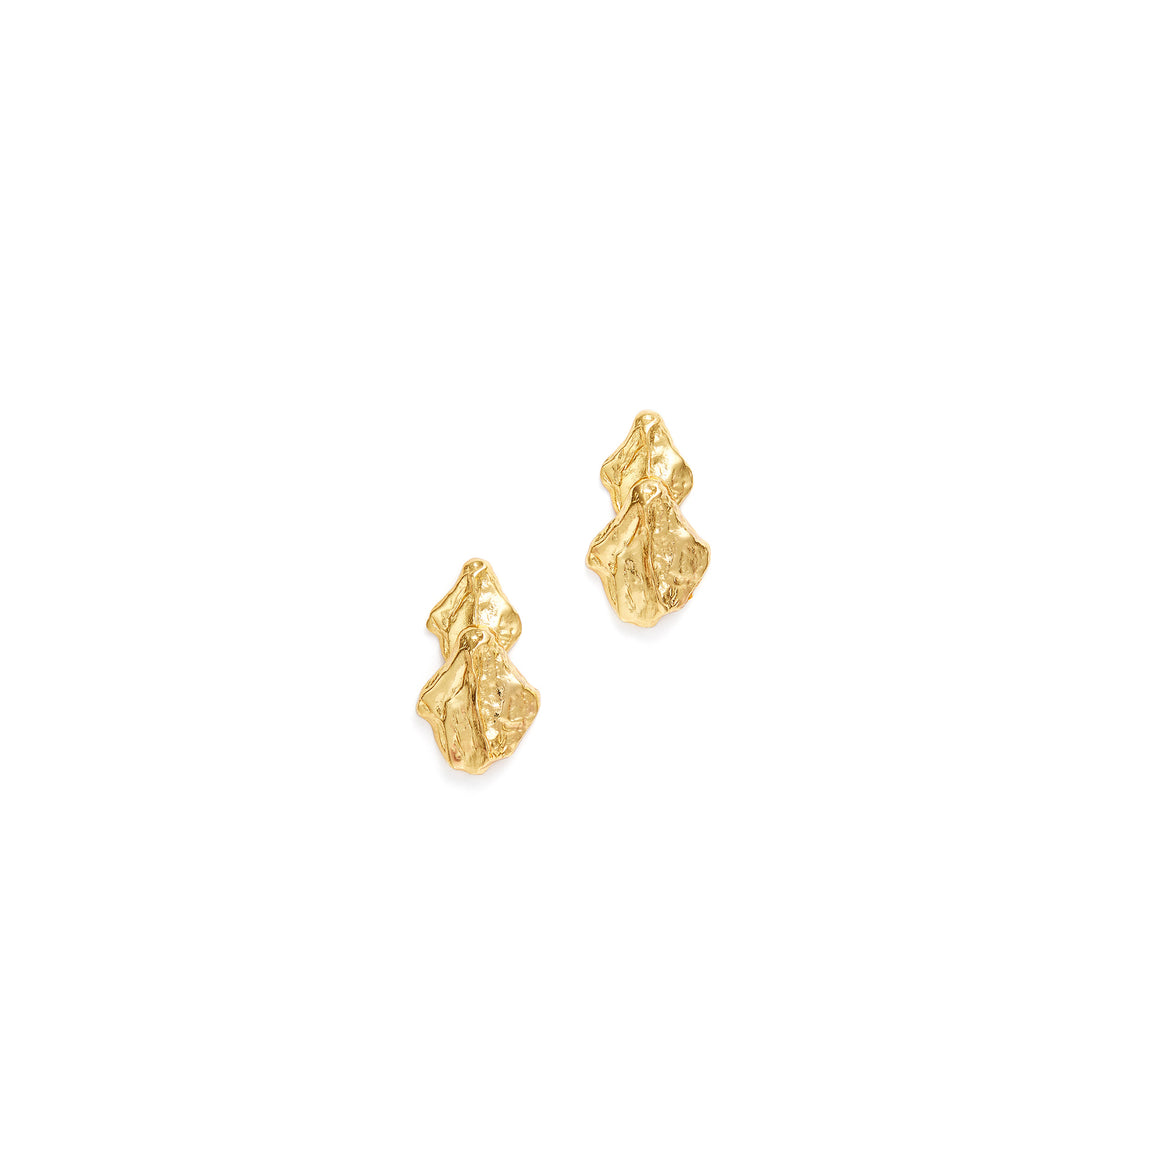 spine short earrings in gold designed by alexandra koumba